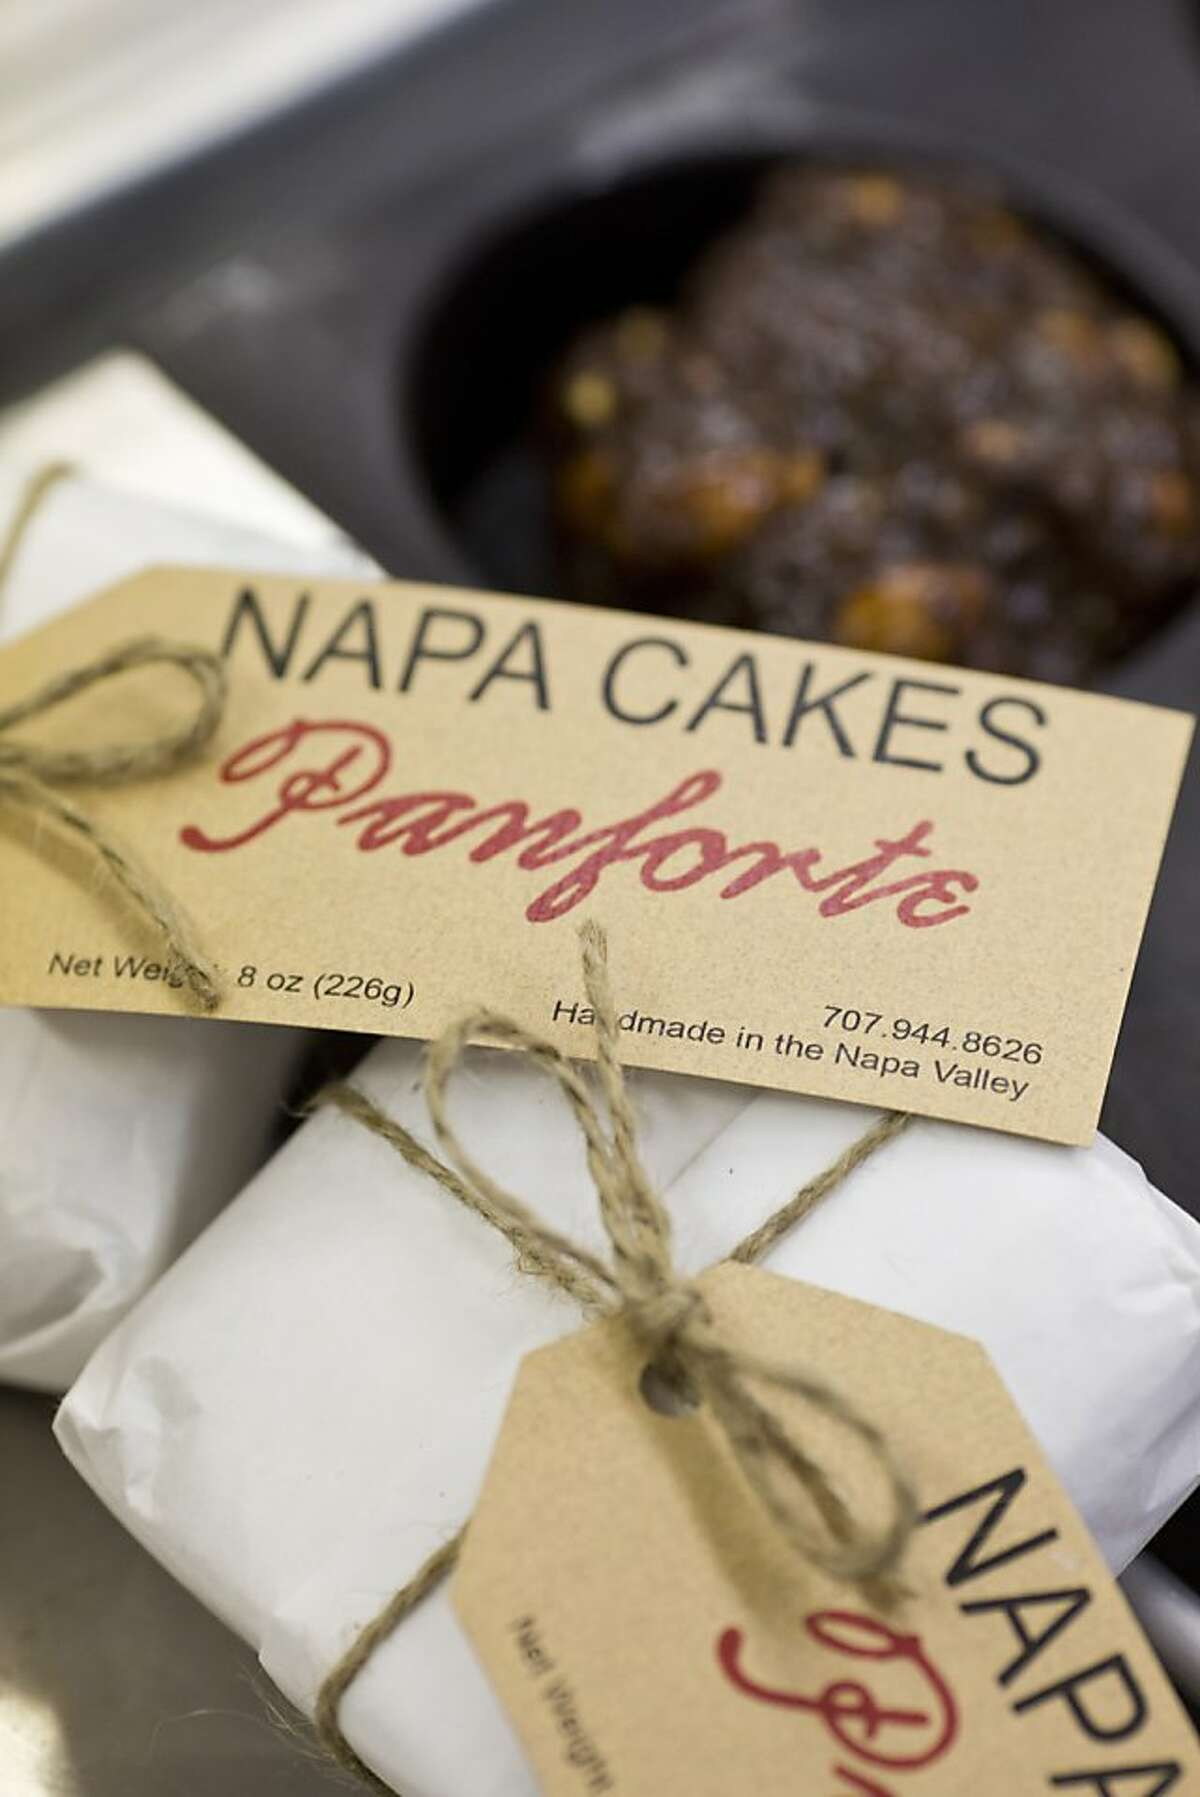 Napa Cakes Panforte, made by hand by Marjorie Caldwell, are available in stores like Bi-Rite markets and other boutique stores in Napa, Calif., Friday, October 4, 2013.